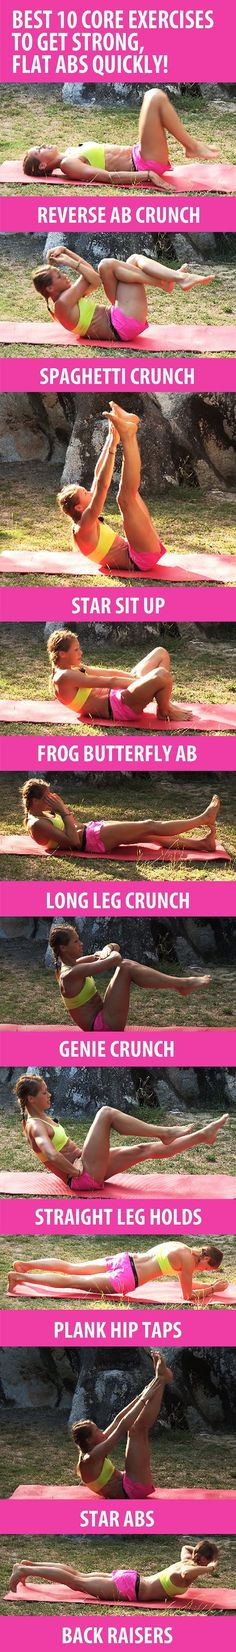 These 10 core exercises will help you sculpt six-pack abs, build core strength, and get rid of belly fat quickly. Recommended reps: BEGINNERS 8-10, INTERMEDIATE 10-15, ADVANCED 20-30 -abworkout -muffintop -flatbelly -flatstomach -workoutforwomen -upperabs -lowerabs -bellyfat